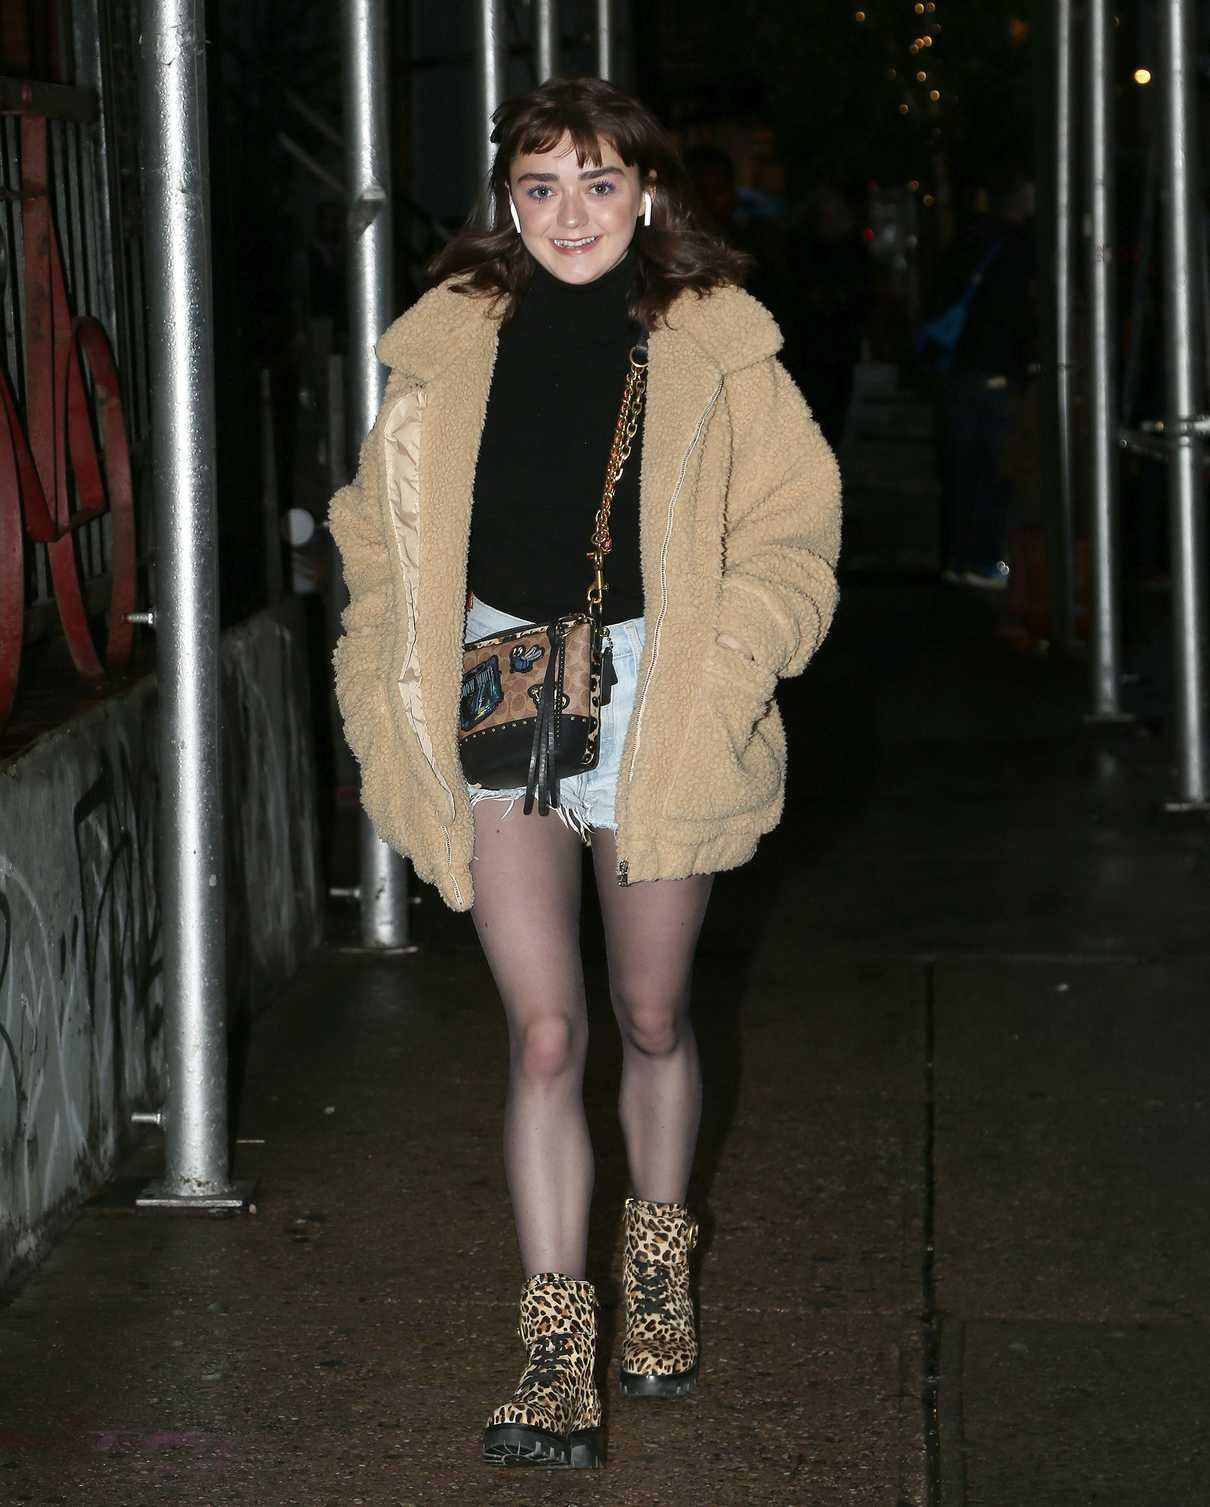 Maisie Williams in Daisy Duke Shorts